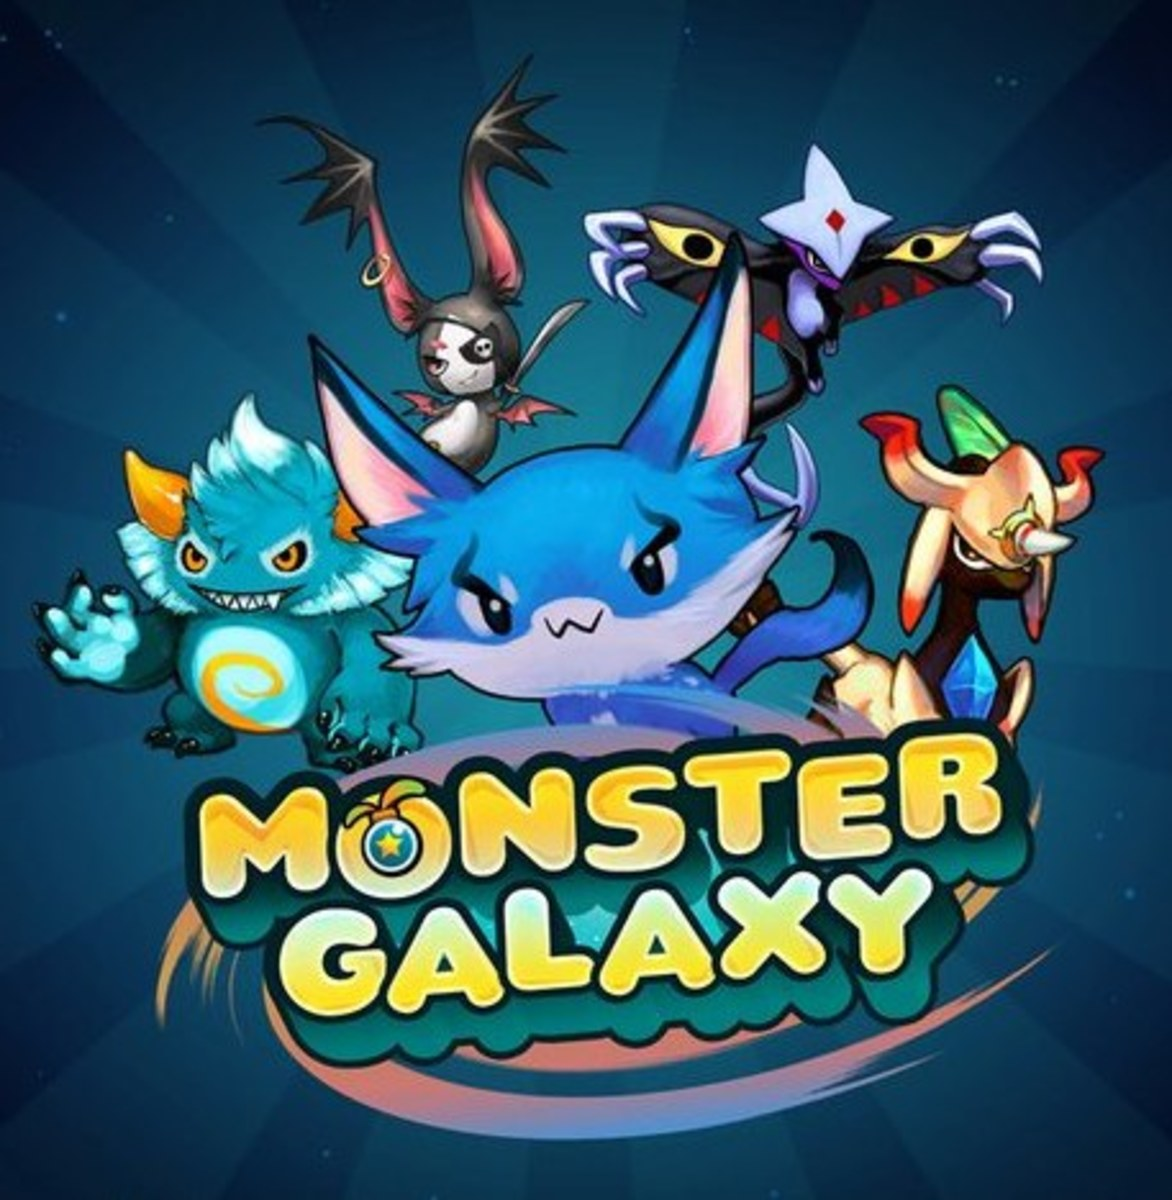 Monster Galaxy is a fun new facebook game that is similar to Pokemon.